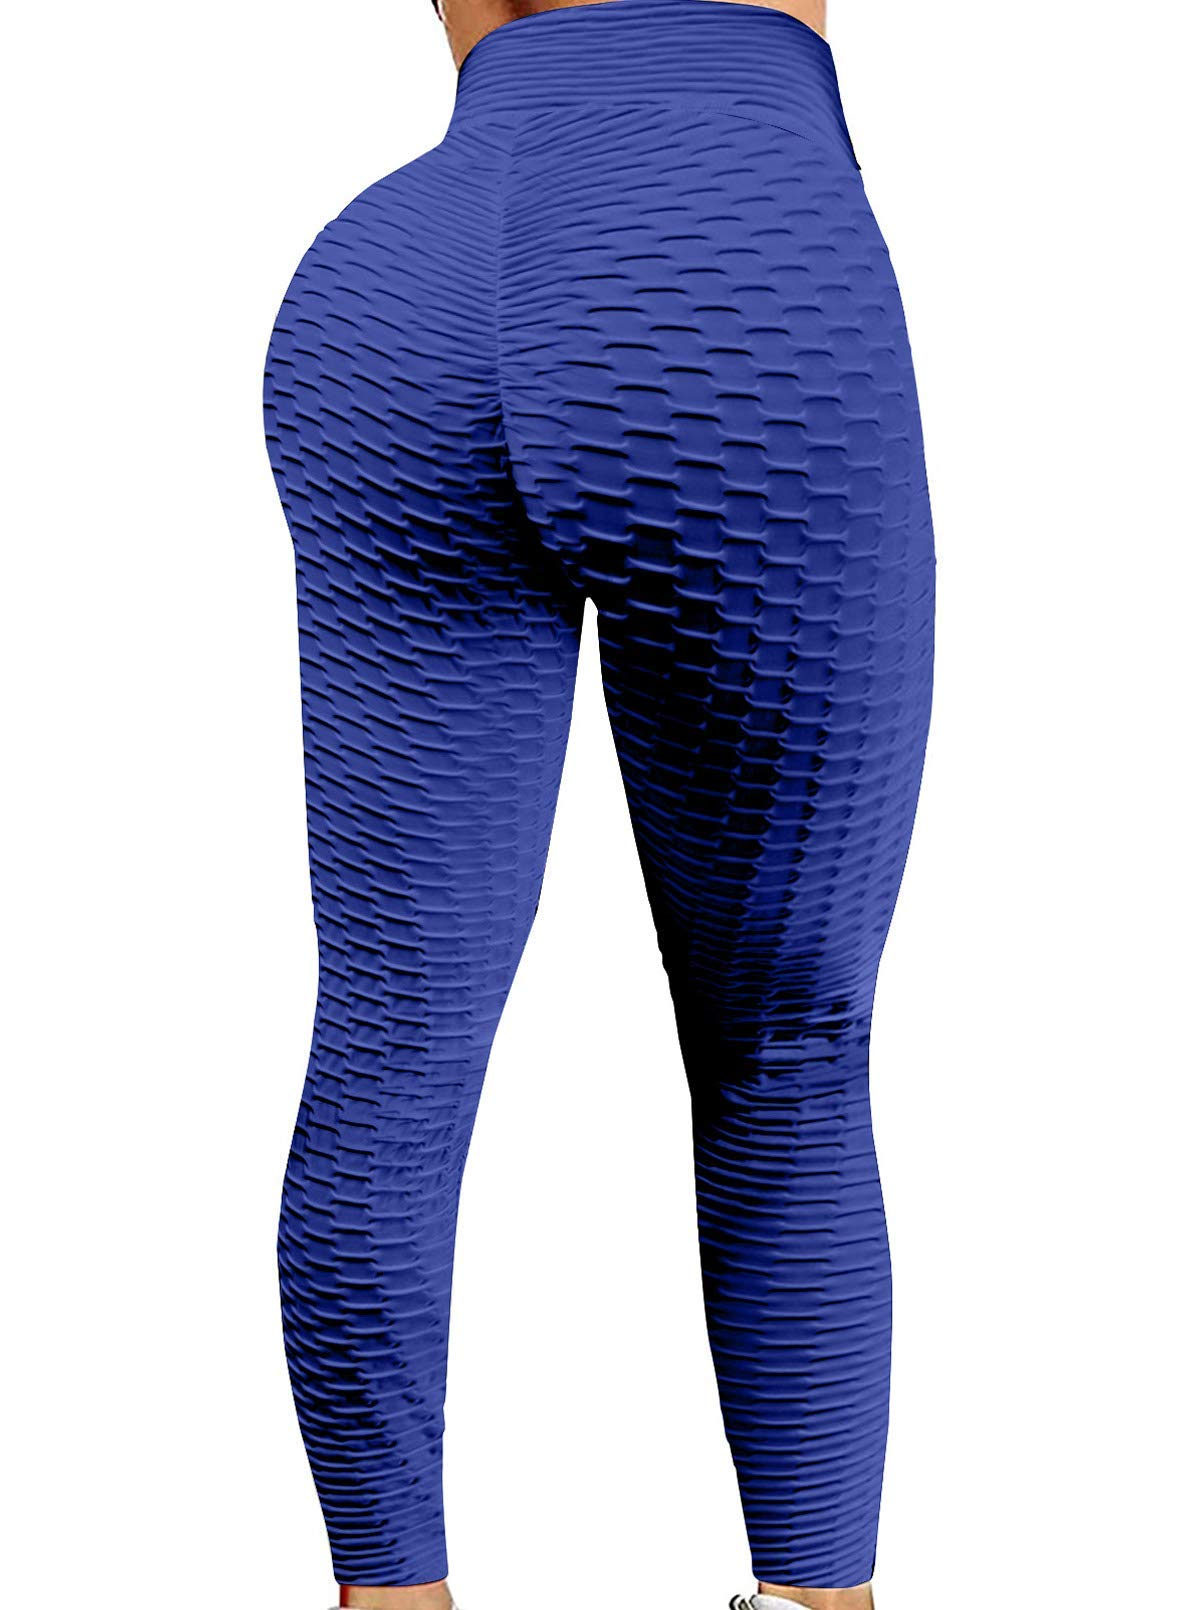 Aleumdr Womens High Waist Ruched Yoga Pants Tummy Control Slimming Booty Leggings